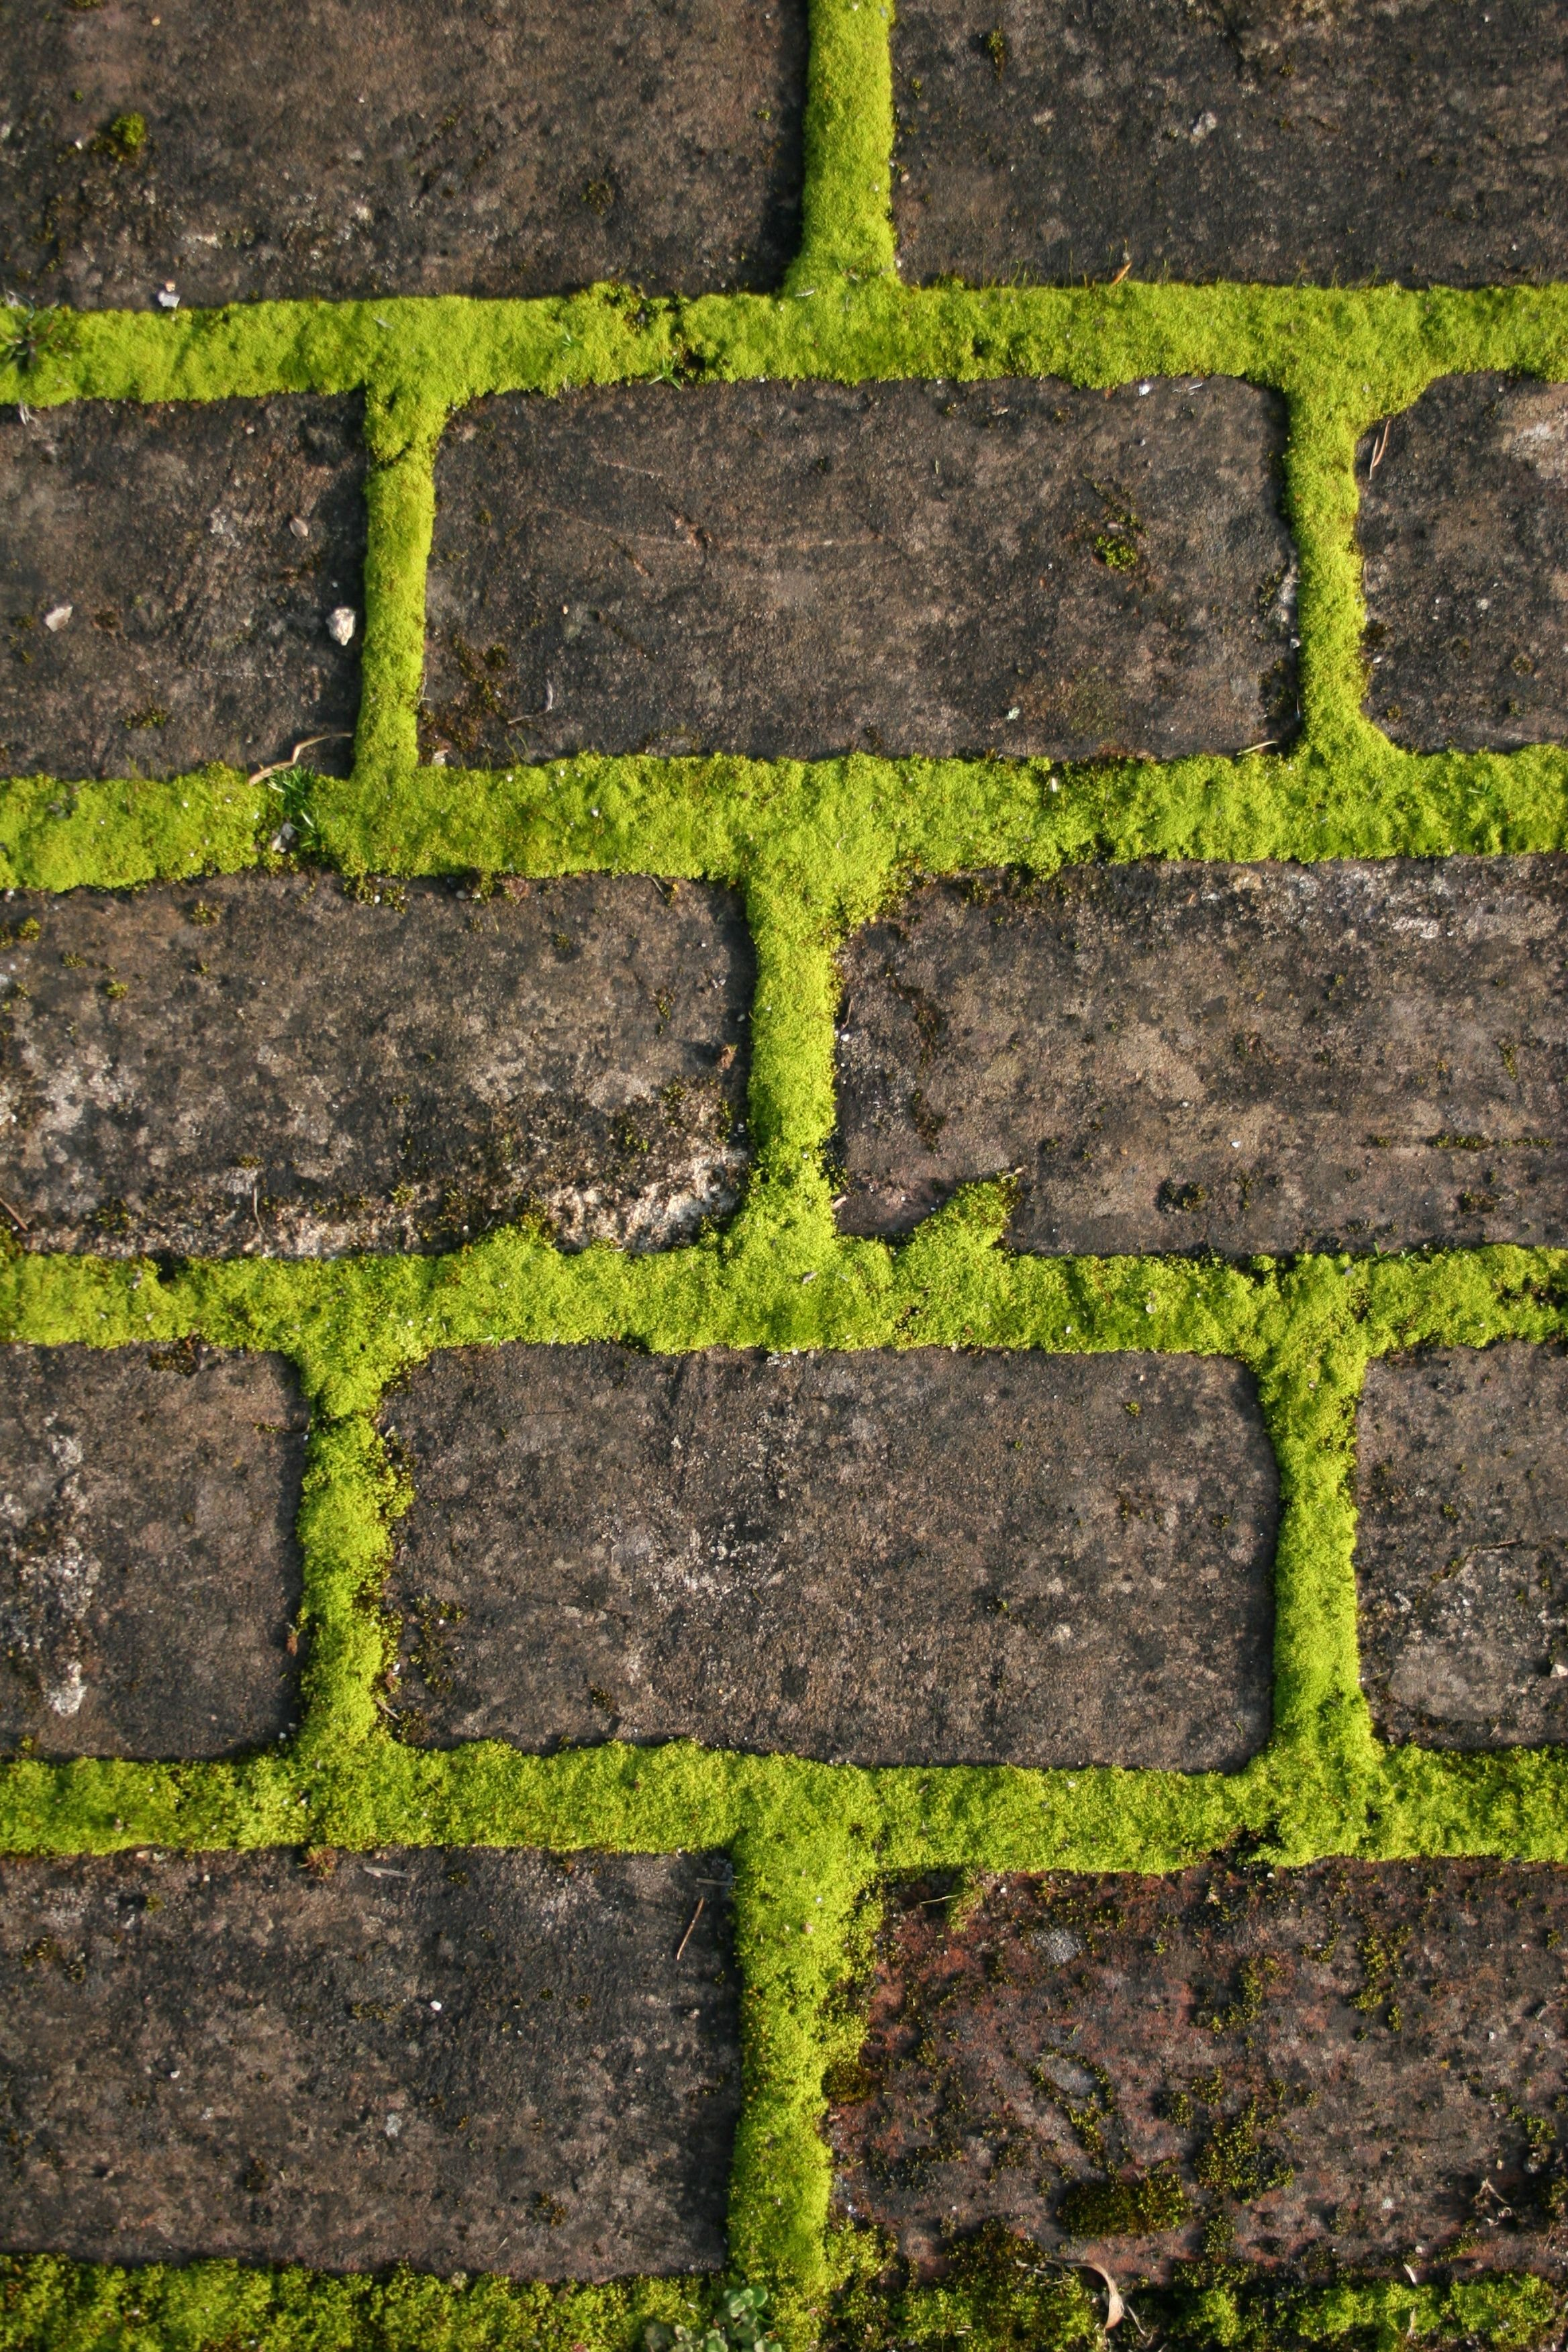 How To Get Rid Of Moss On Paths Naturally